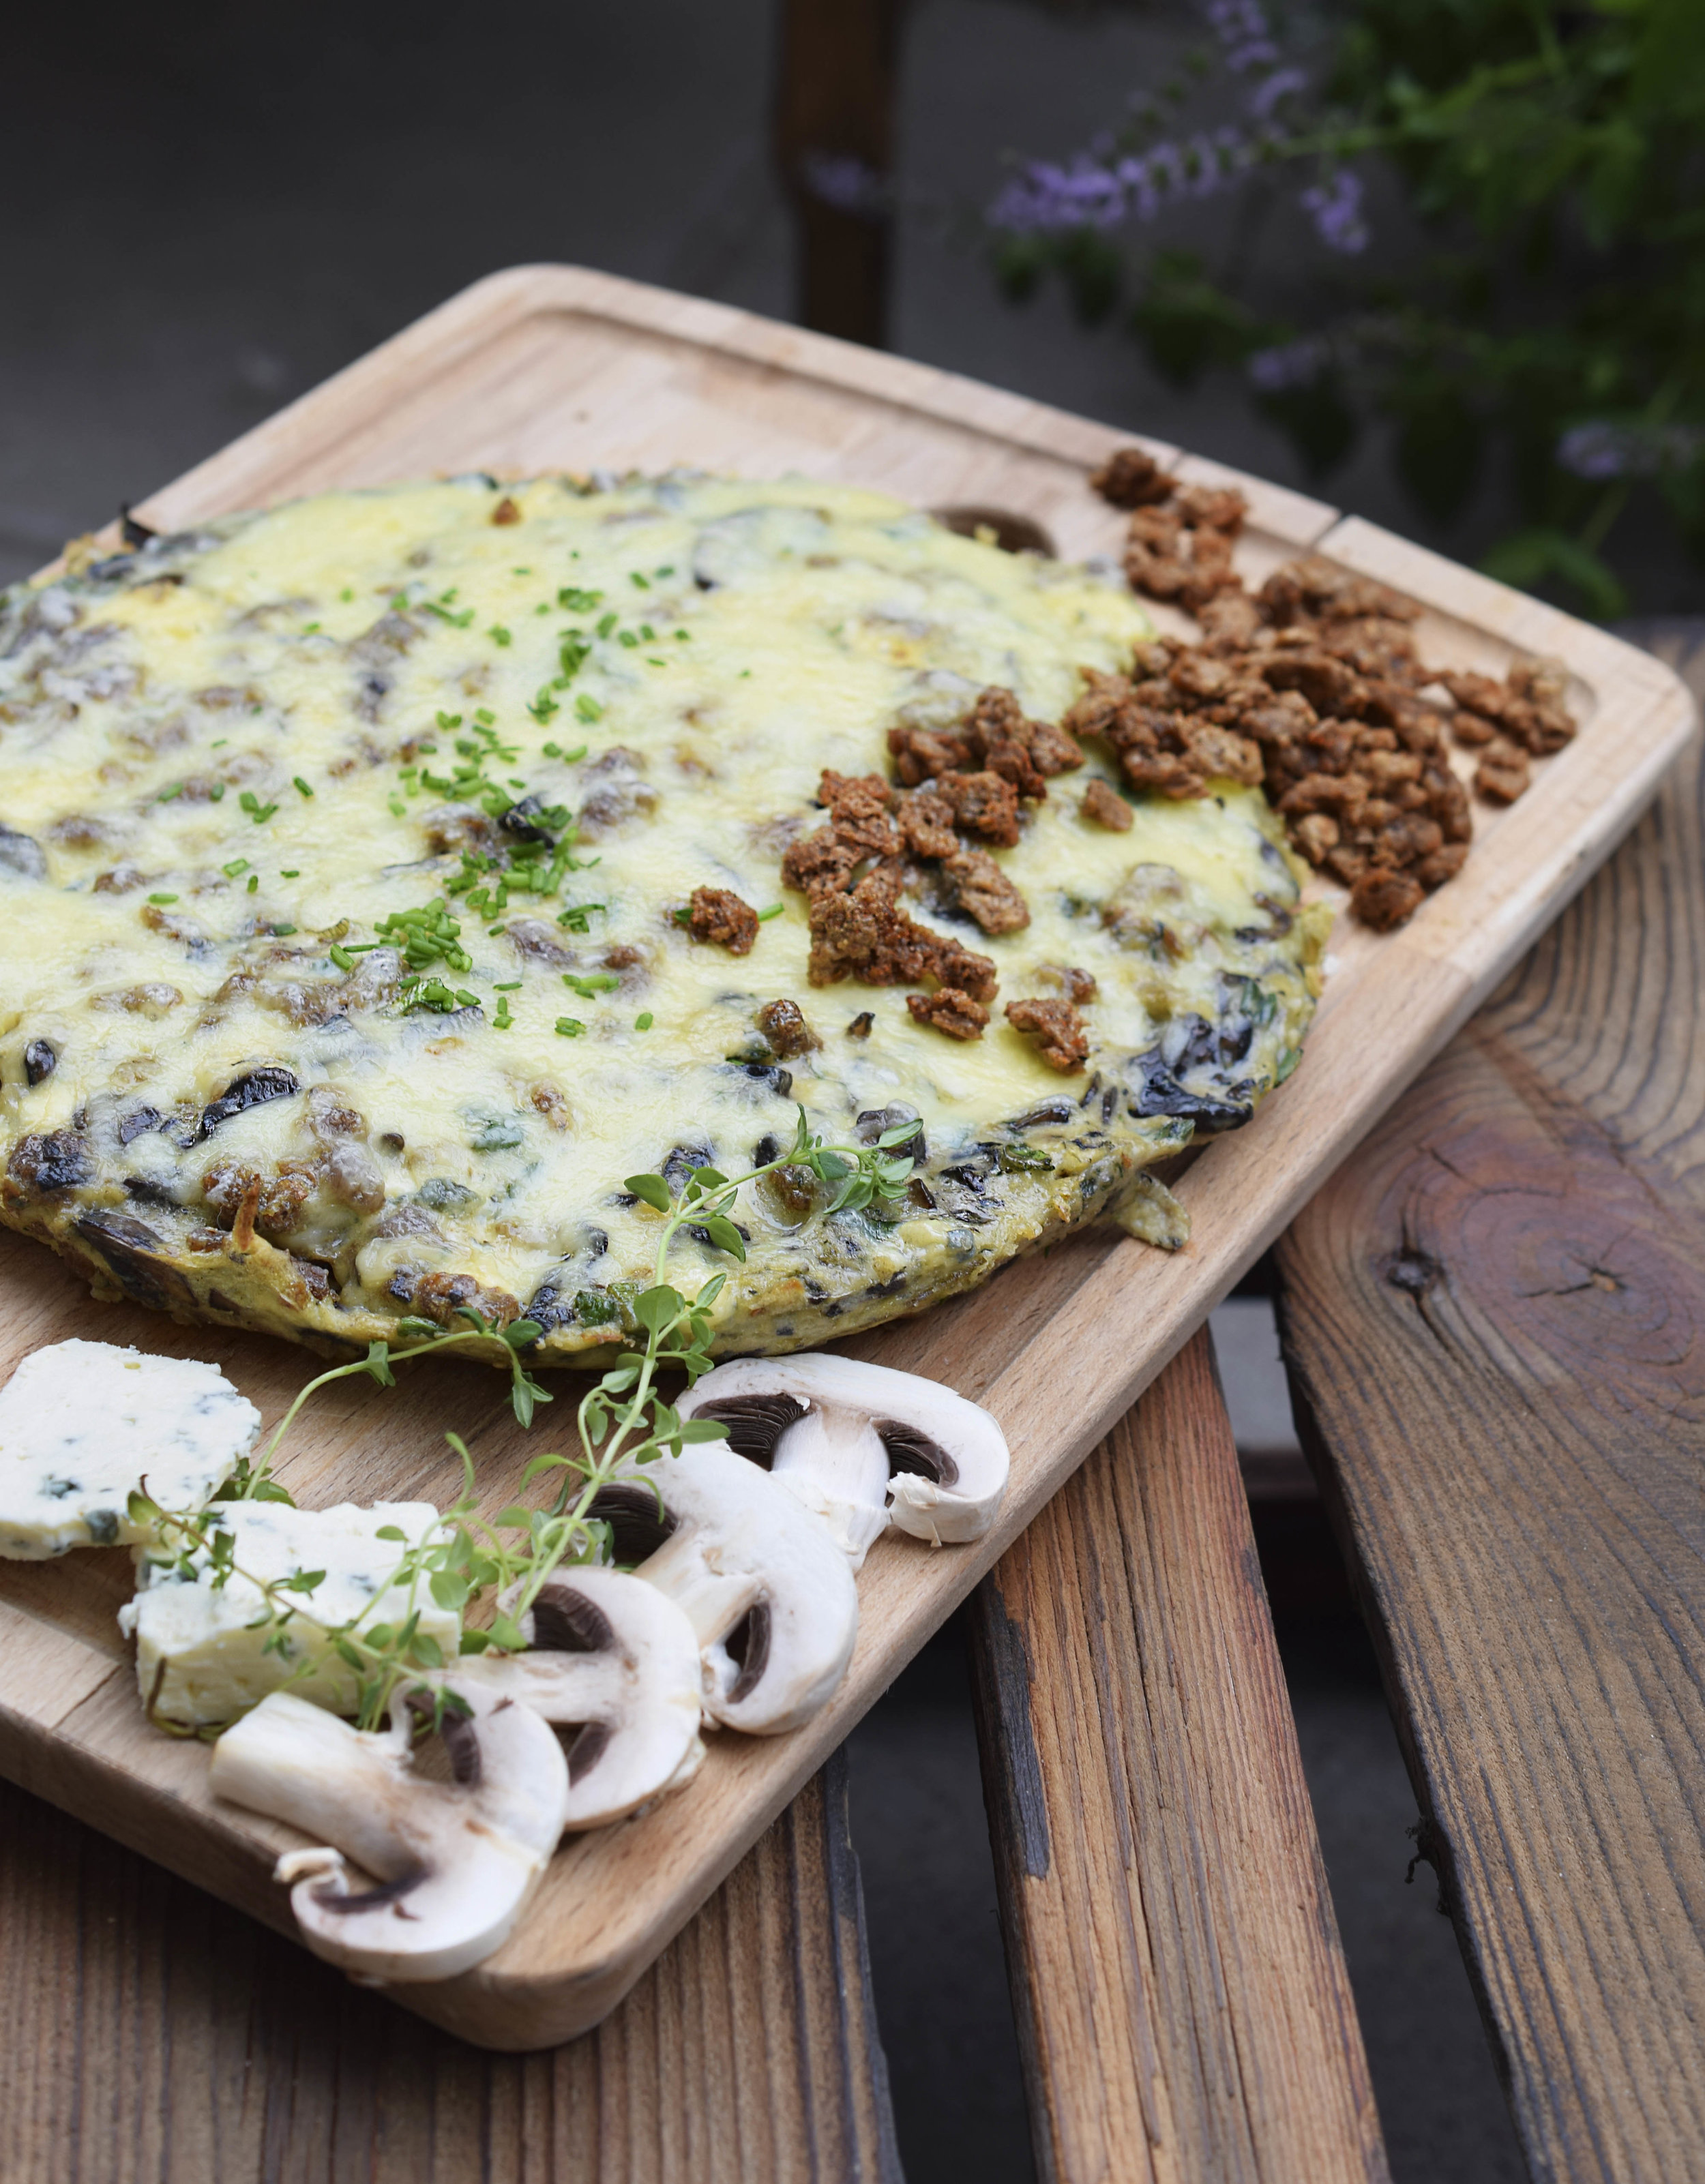 SIRKKIS® - FRITATA - 10 Eggs150g Mushrooms2-3 Cloves Garlic150g Sirkkis®4-5 Twigs of Thyme or 2-3 Twigs of Rosemary100g Blue Cheese1 Tablespoon Butter1 Teaspoon OilSaltPepper